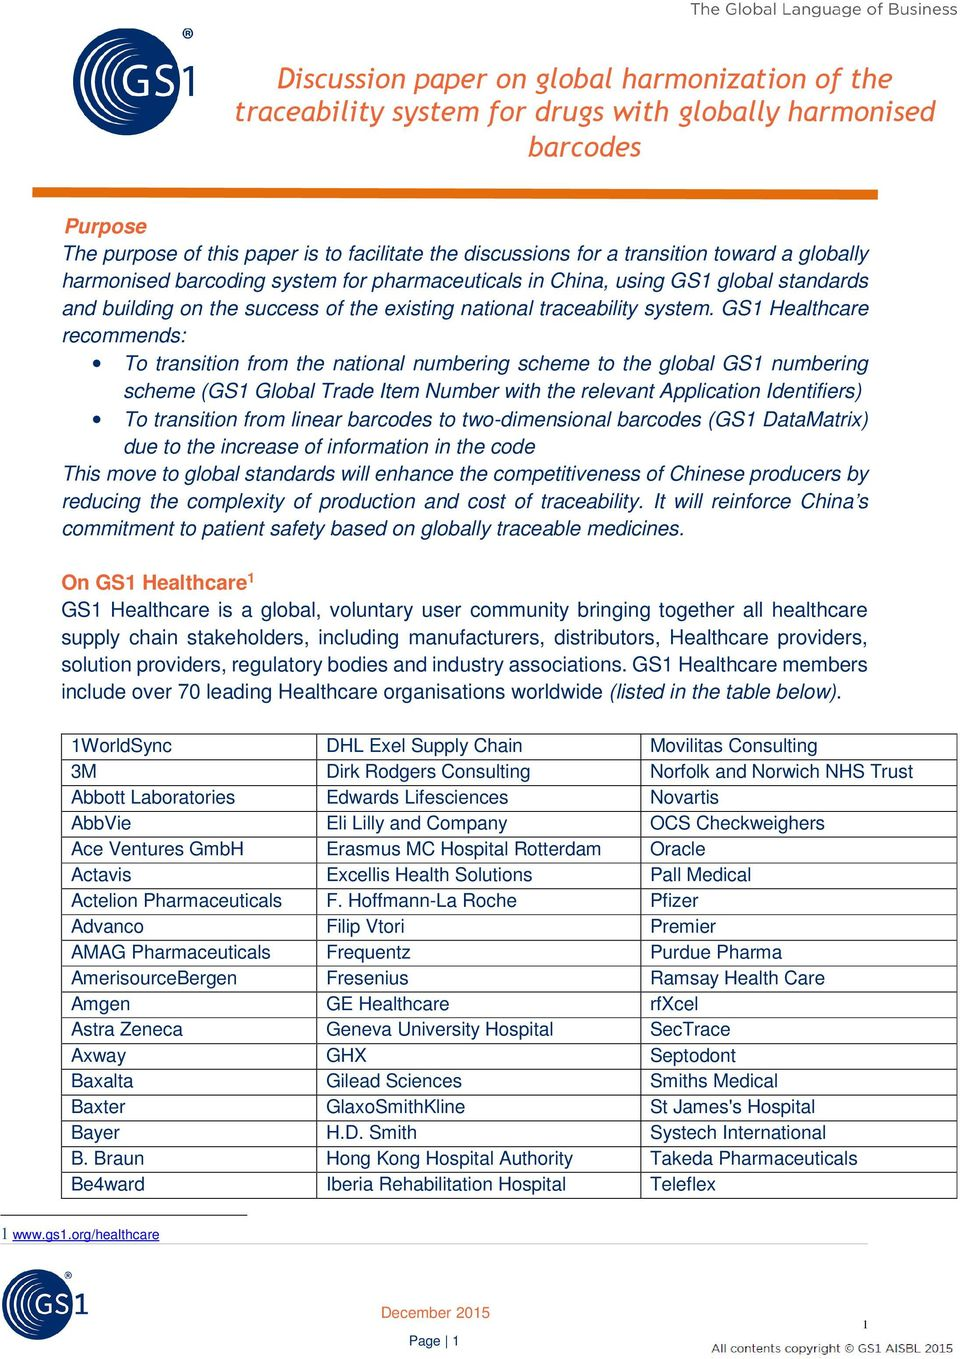 Discussion paper on global harmonization of the traceability system